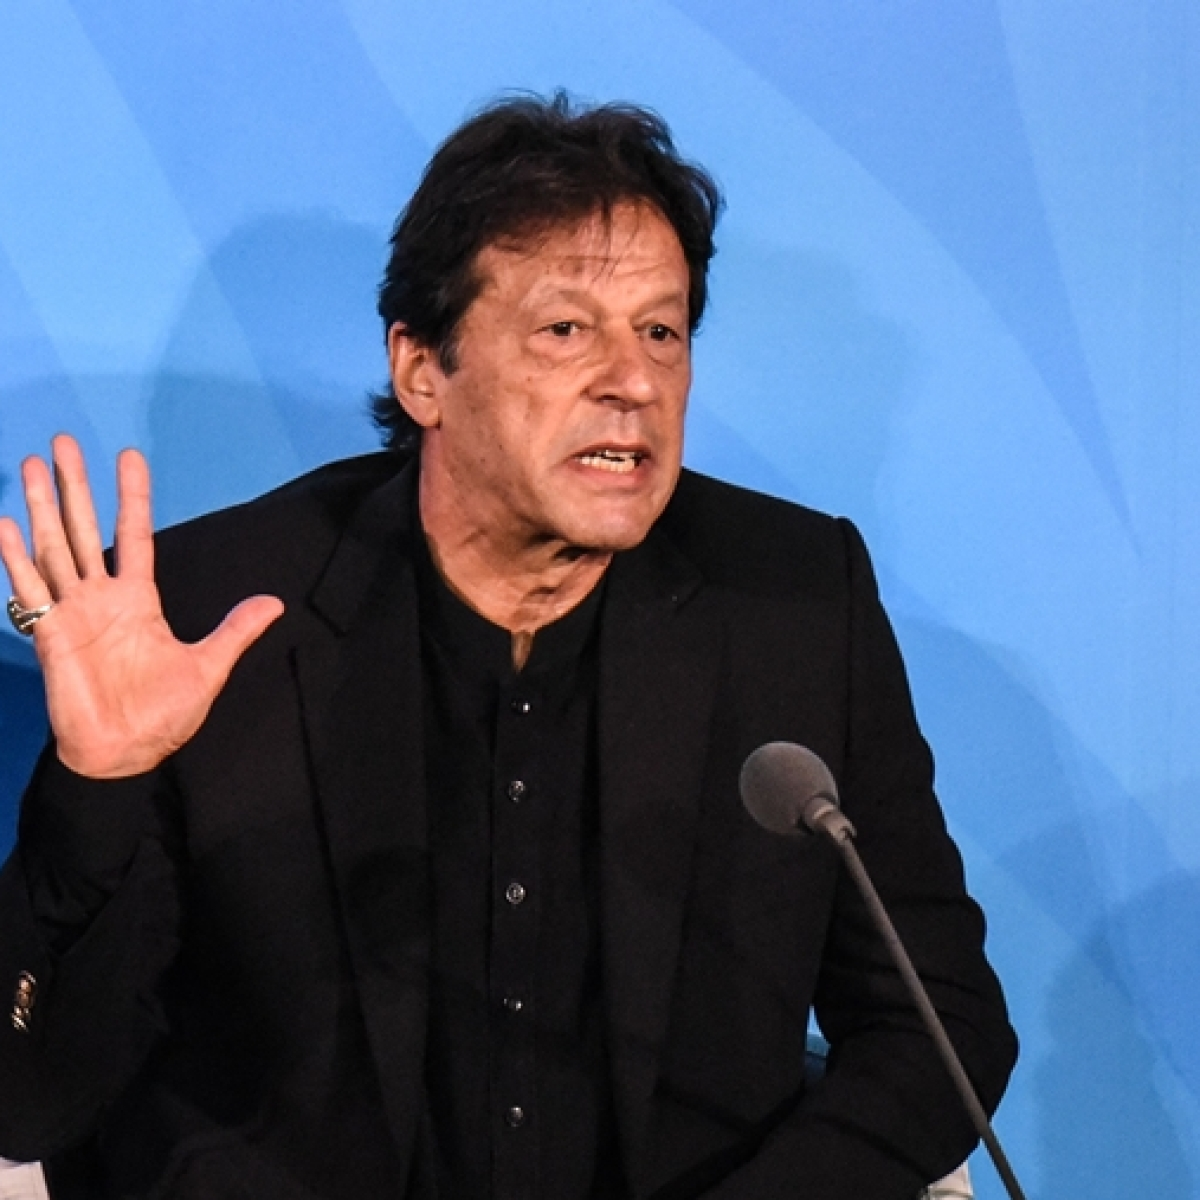 No one talks of Hinduism linked to suicide attacks: Imran Khan